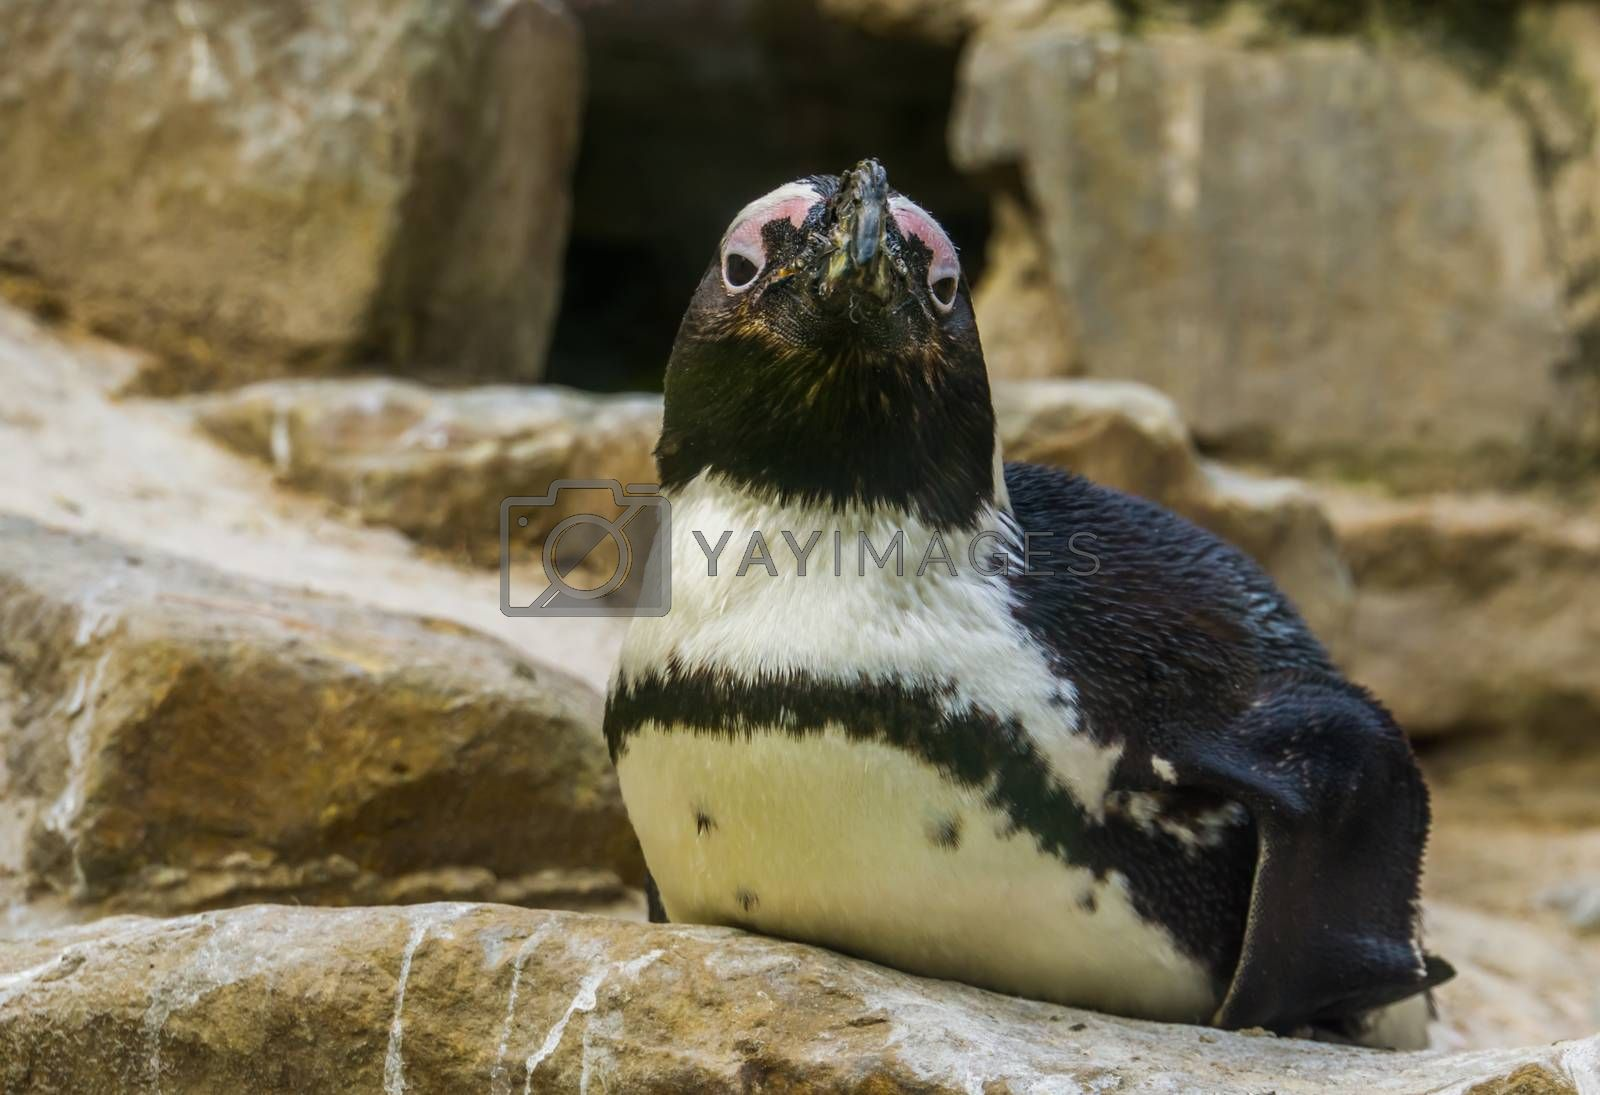 closeup of a african black footed penguin sitting on a rock, tropical semi aquatic bird from the coast of Africa, Endangered animal specie